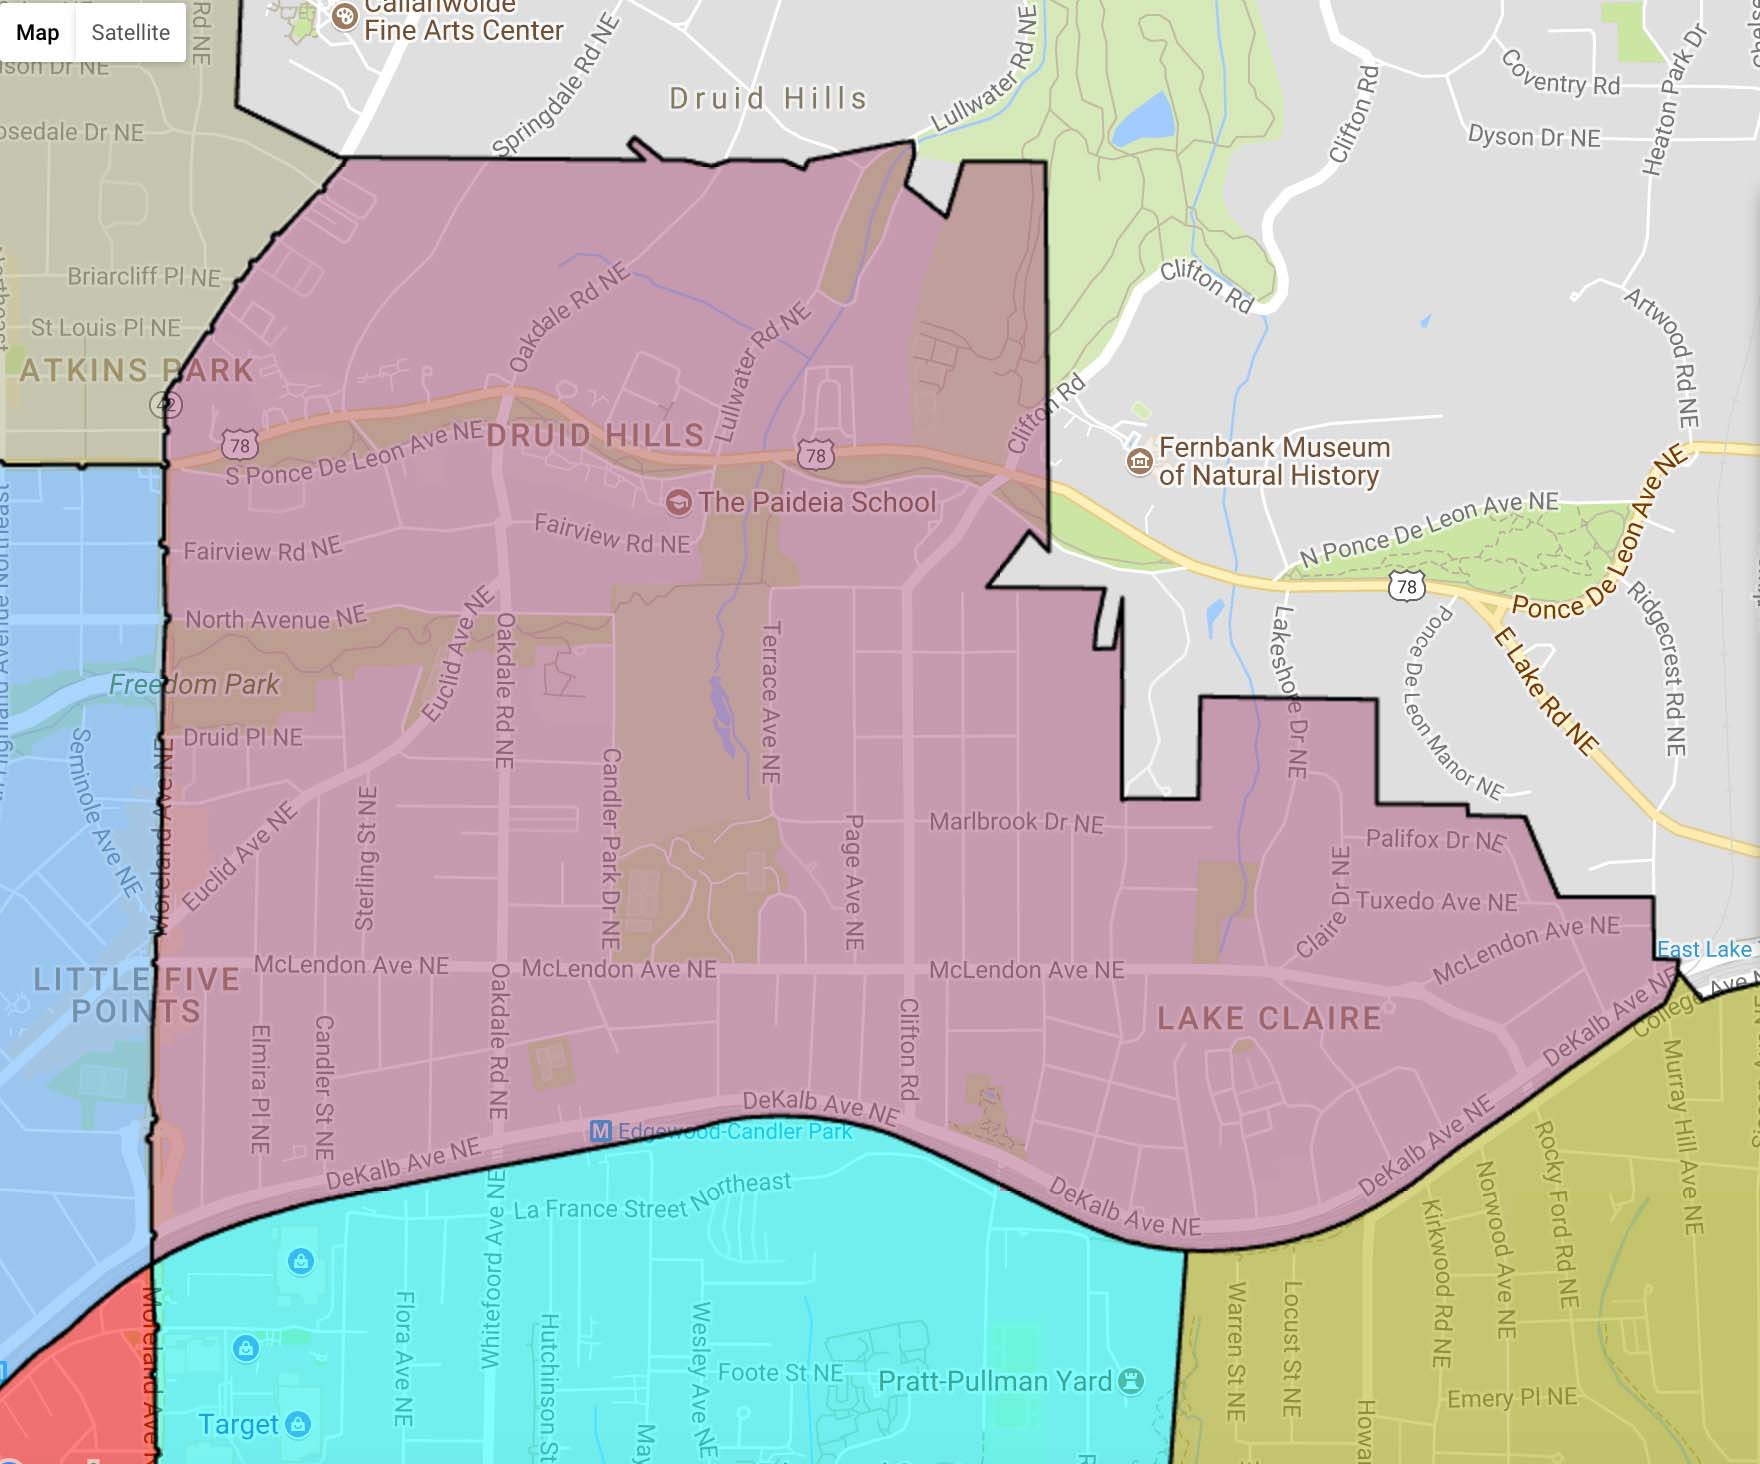 Zone 6 Map APD Zone 6, Beat 608 MAP Zone 6 Map